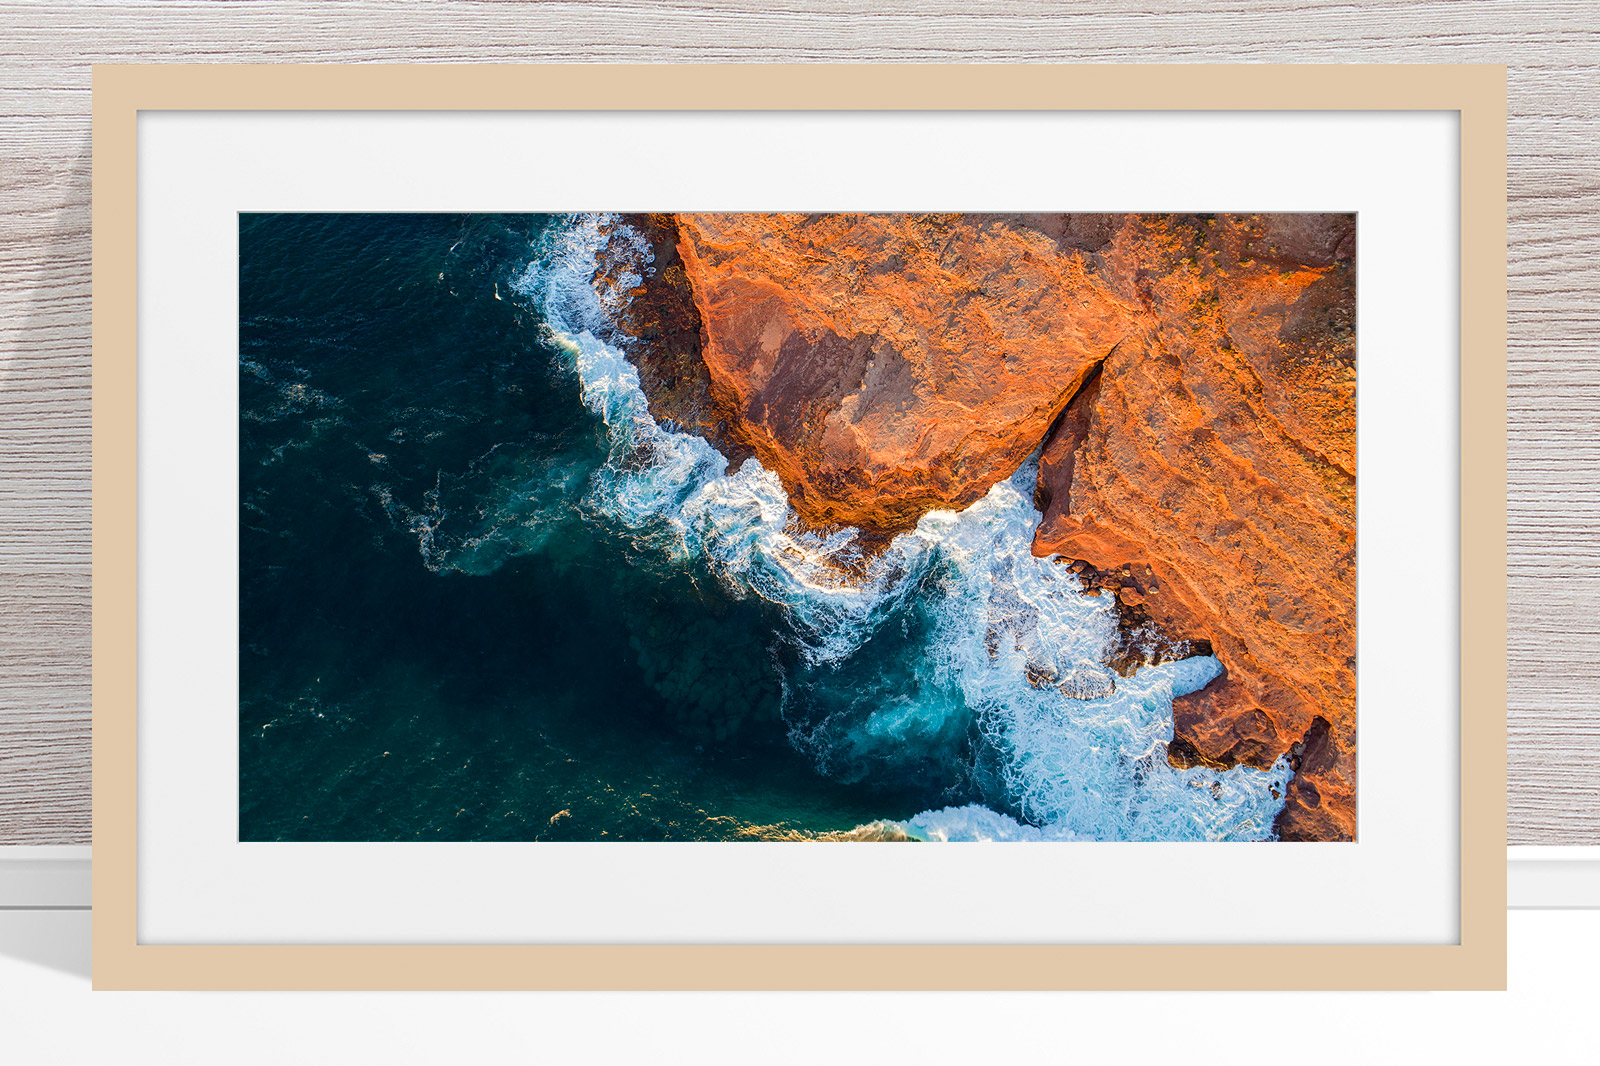 008 - Jason Mazur - 'Kalbarri Coastline' Light Frame